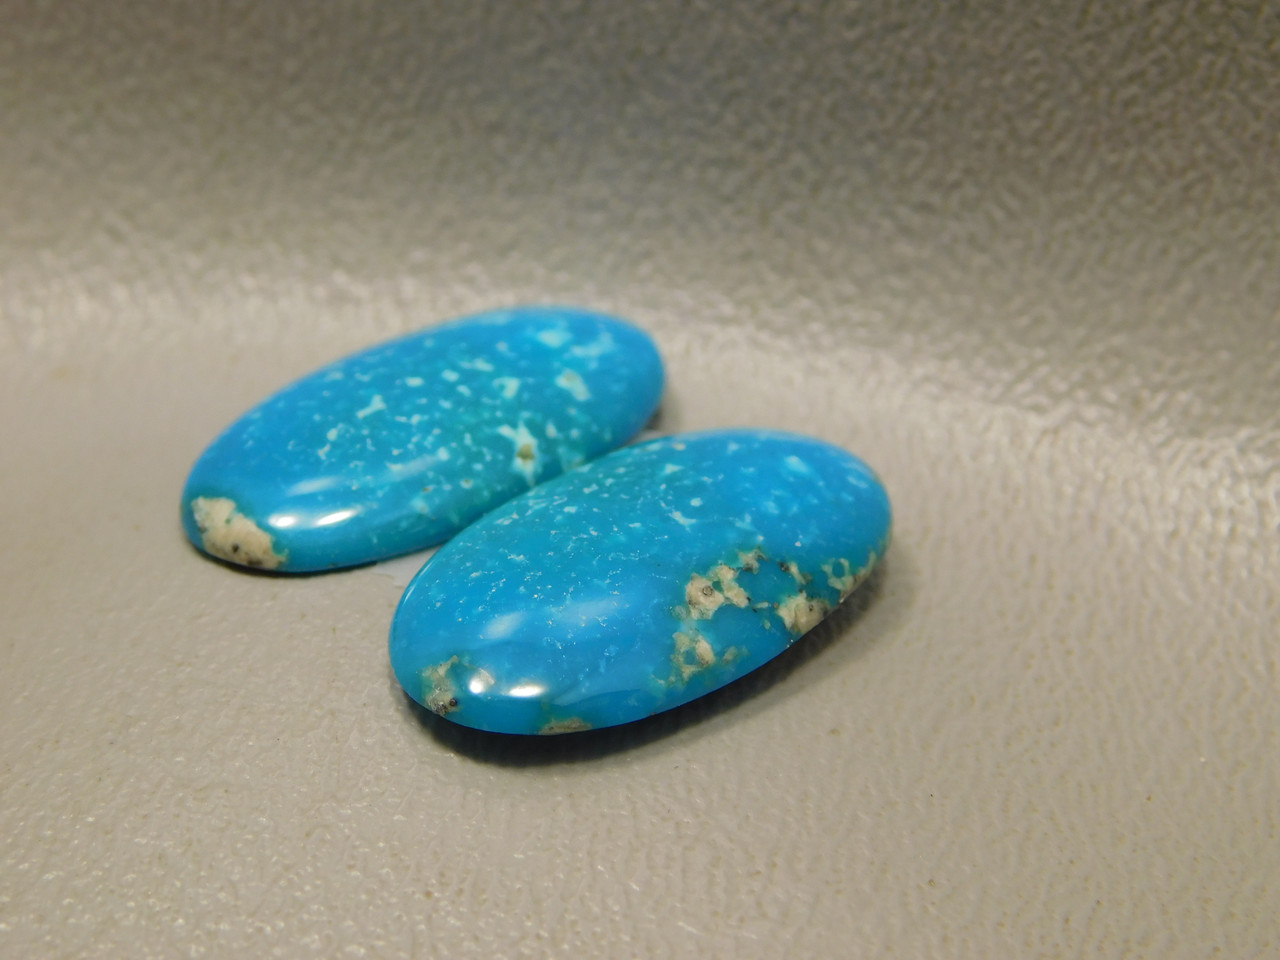 Turquoise Matched Pair for Earrings Cabochons Ovals Stones #3